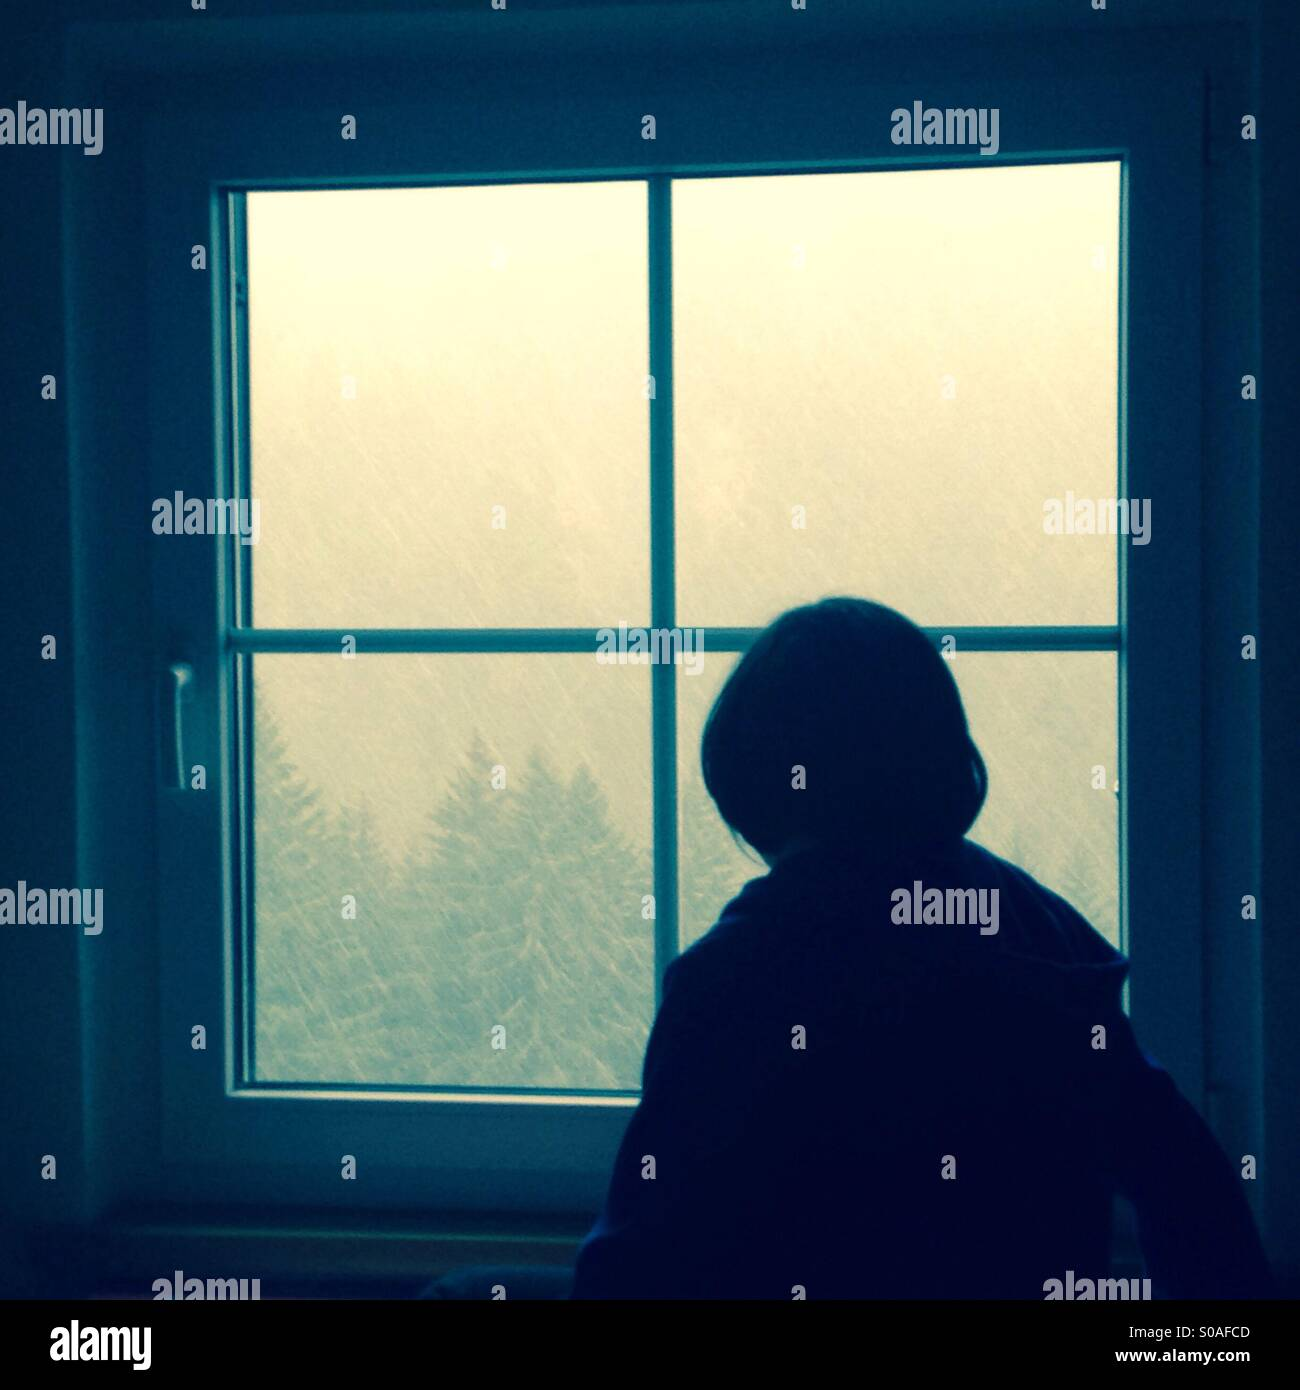 Looking through the window - Stock Image